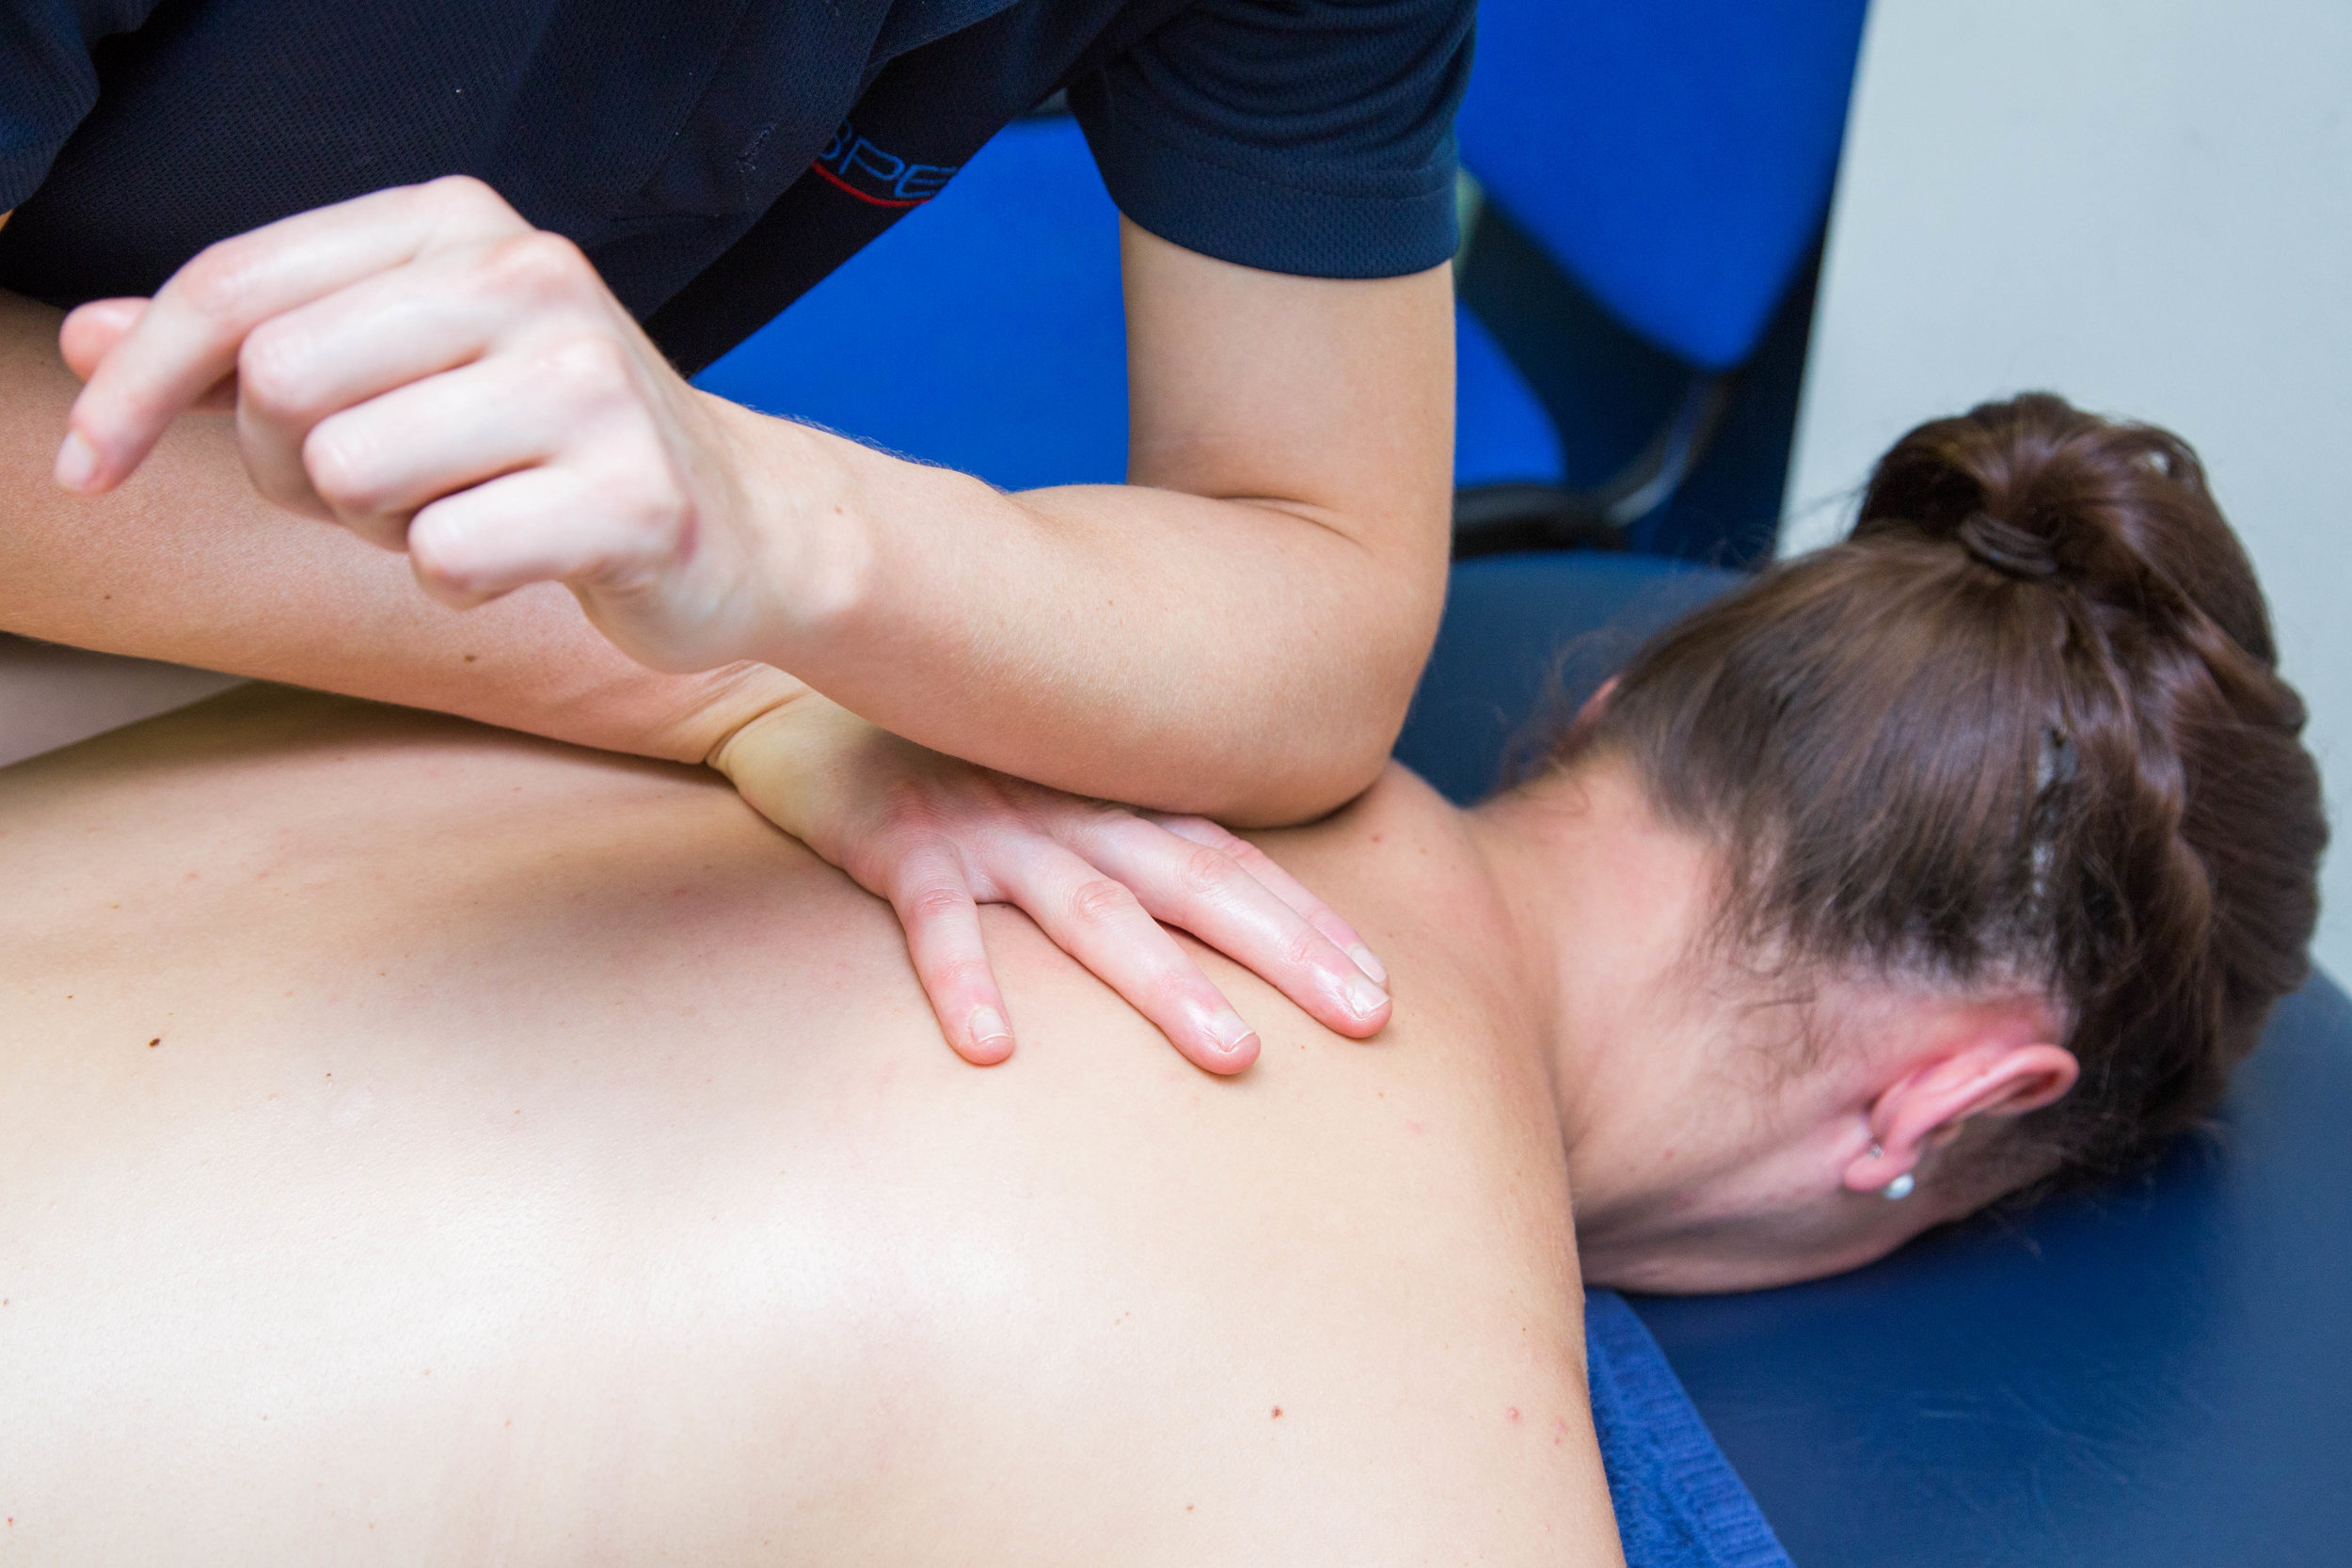 We will support your change in riding position with sports massage therapy